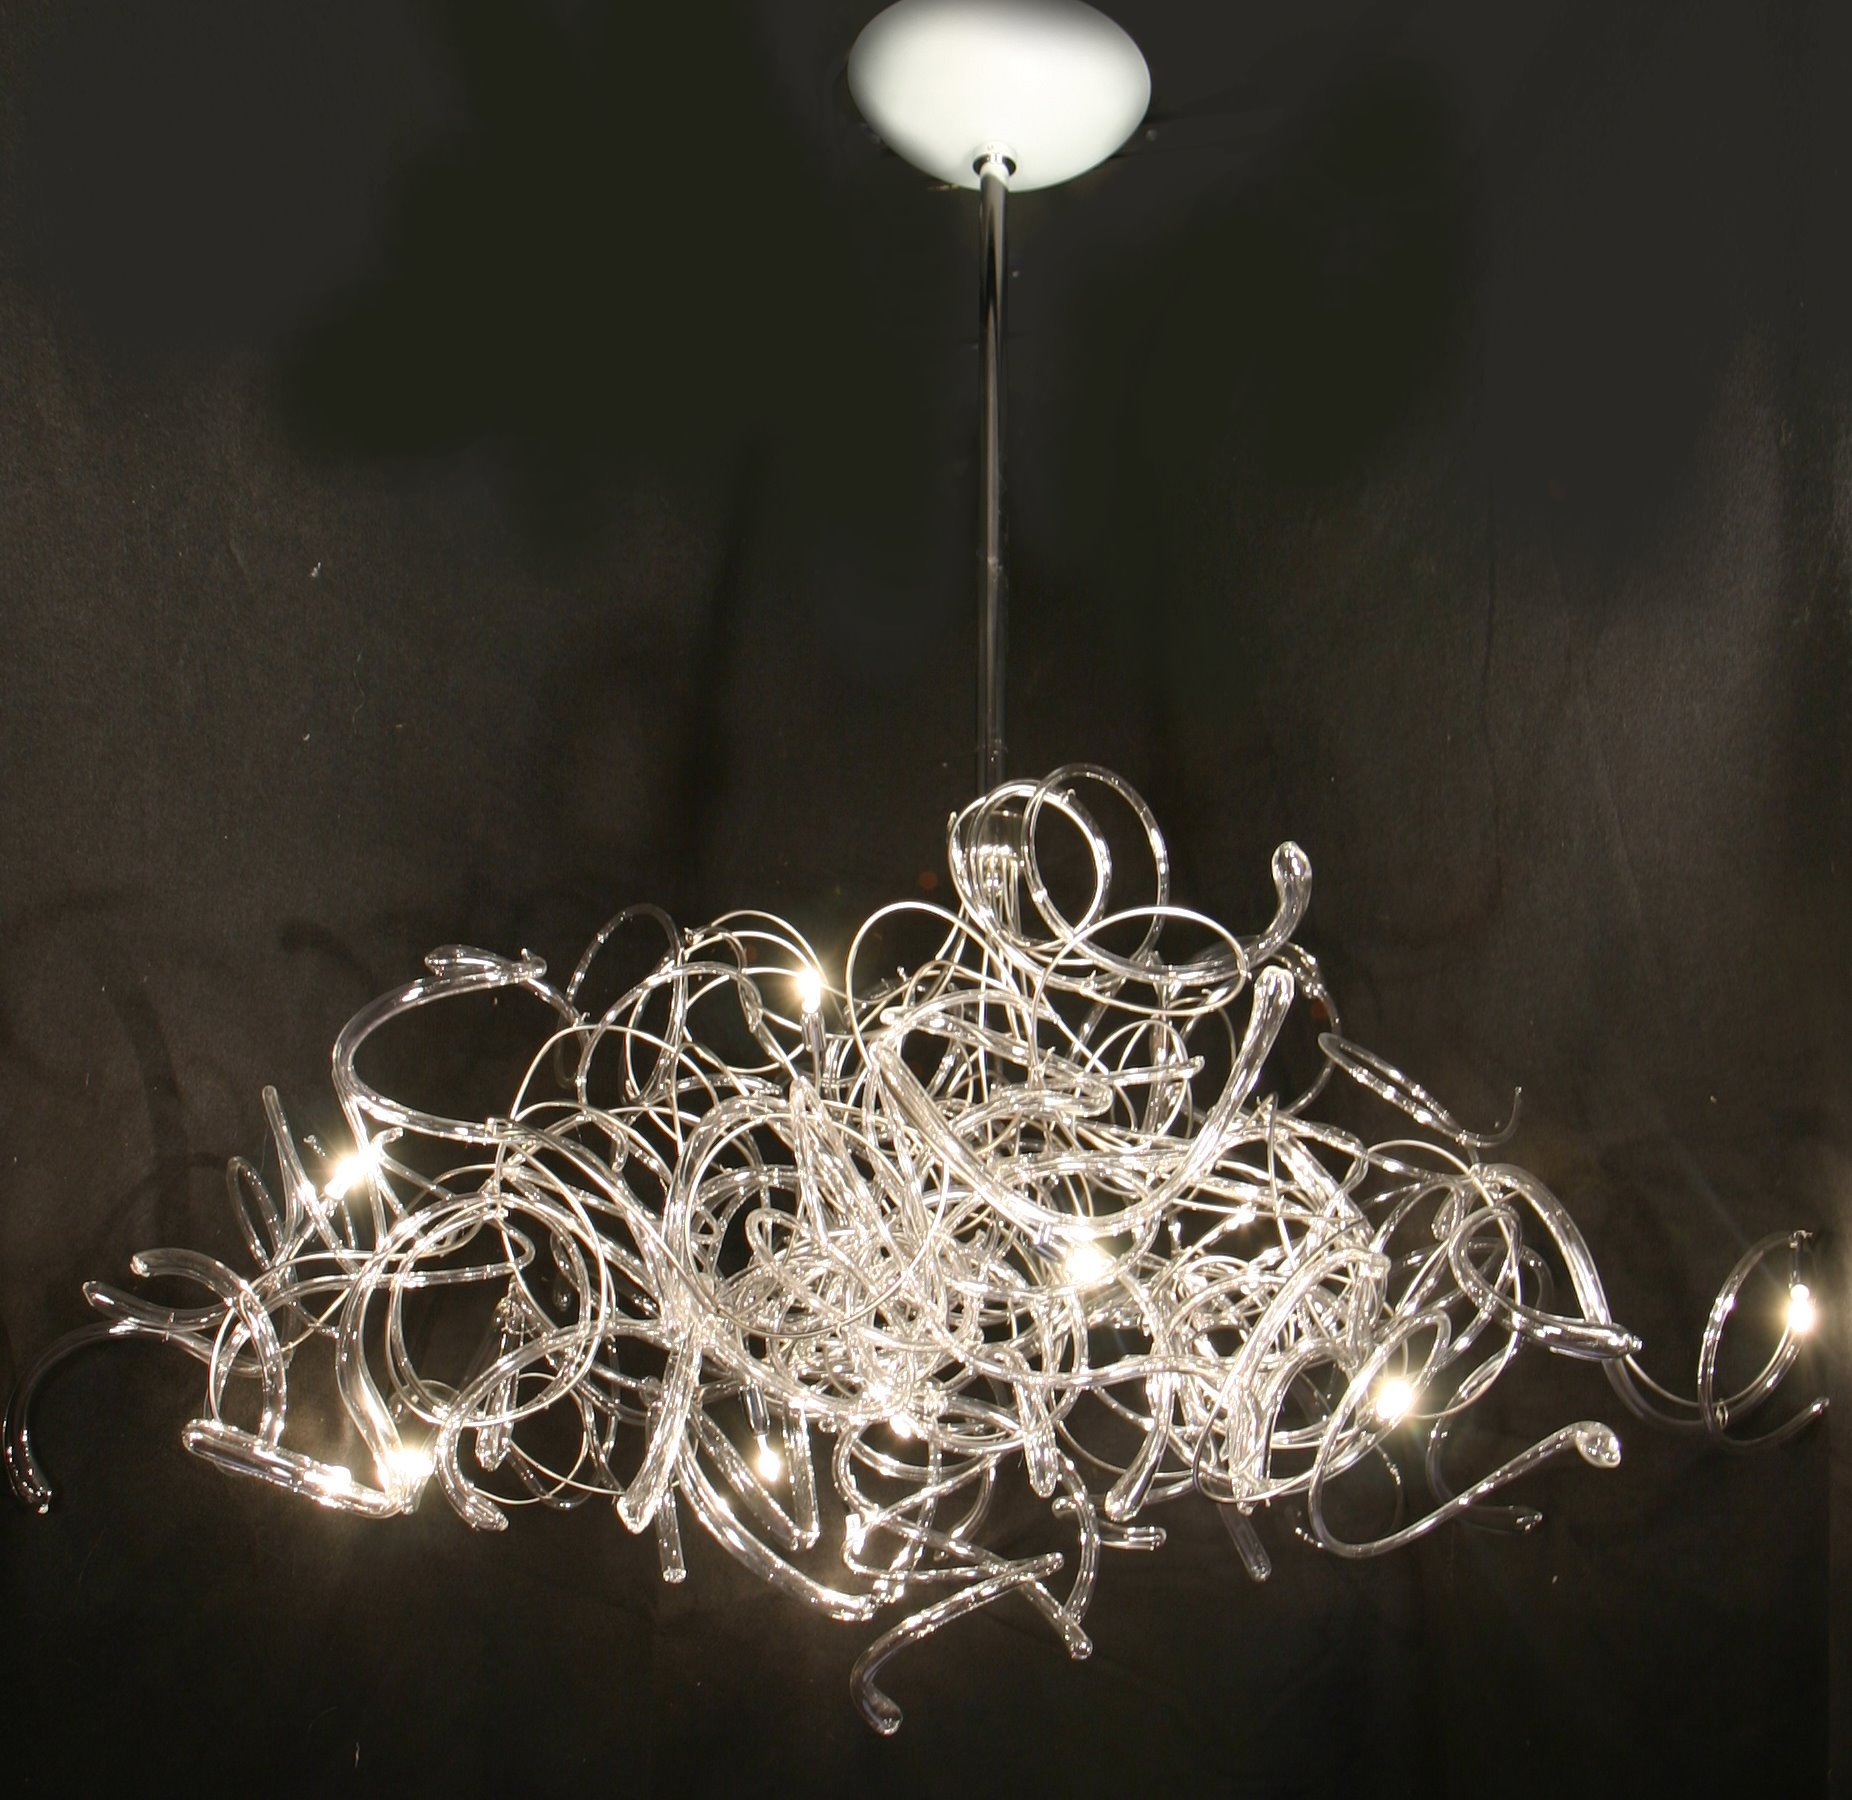 Modern Contemporary Chandelier Regarding Contemporary Chandeliers (Image 14 of 15)